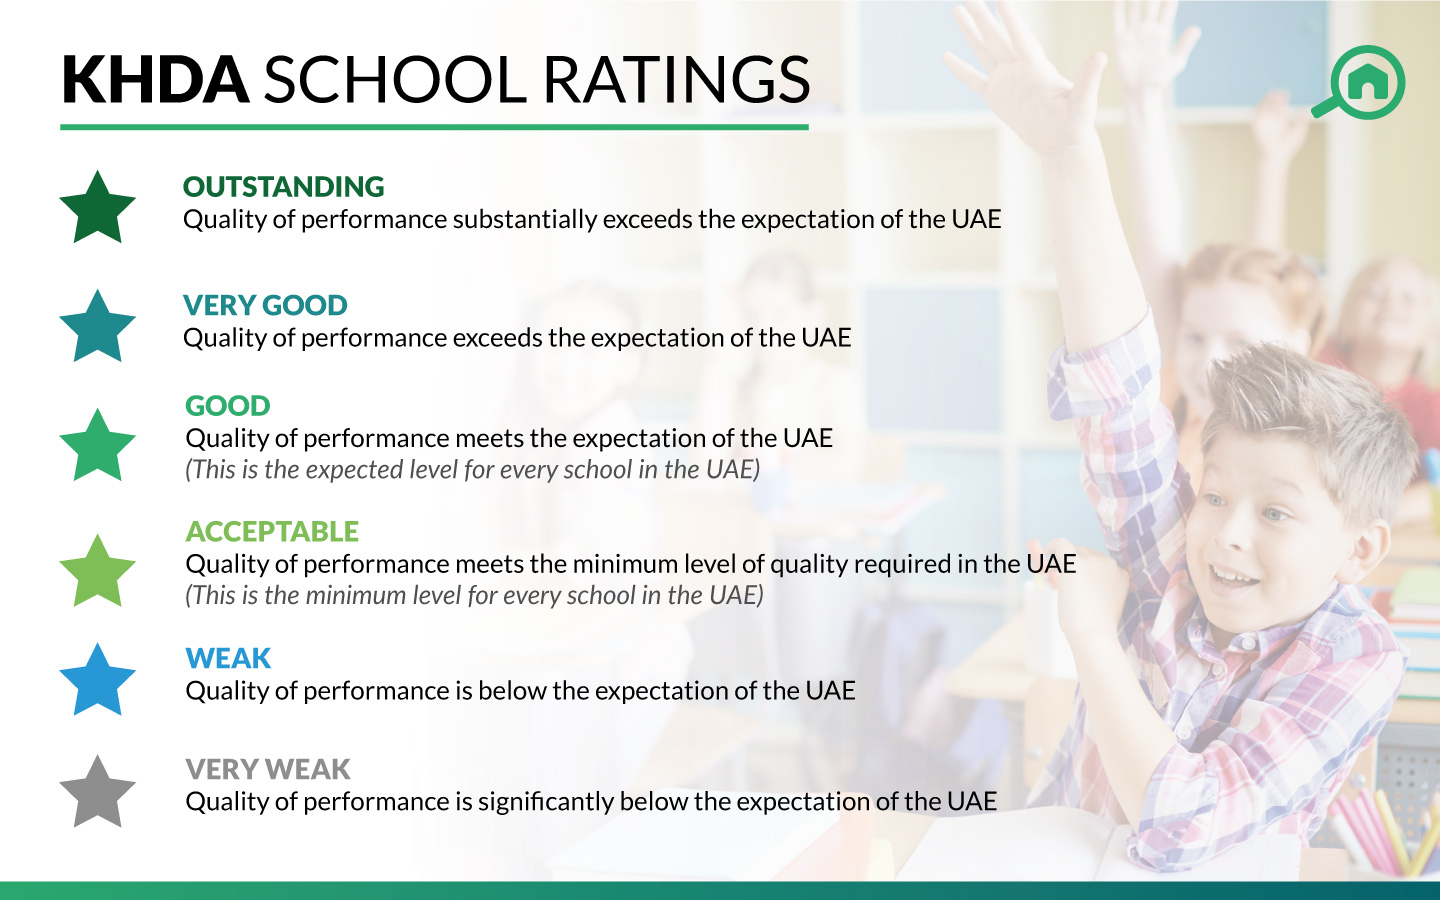 KHDA's rating scale explained